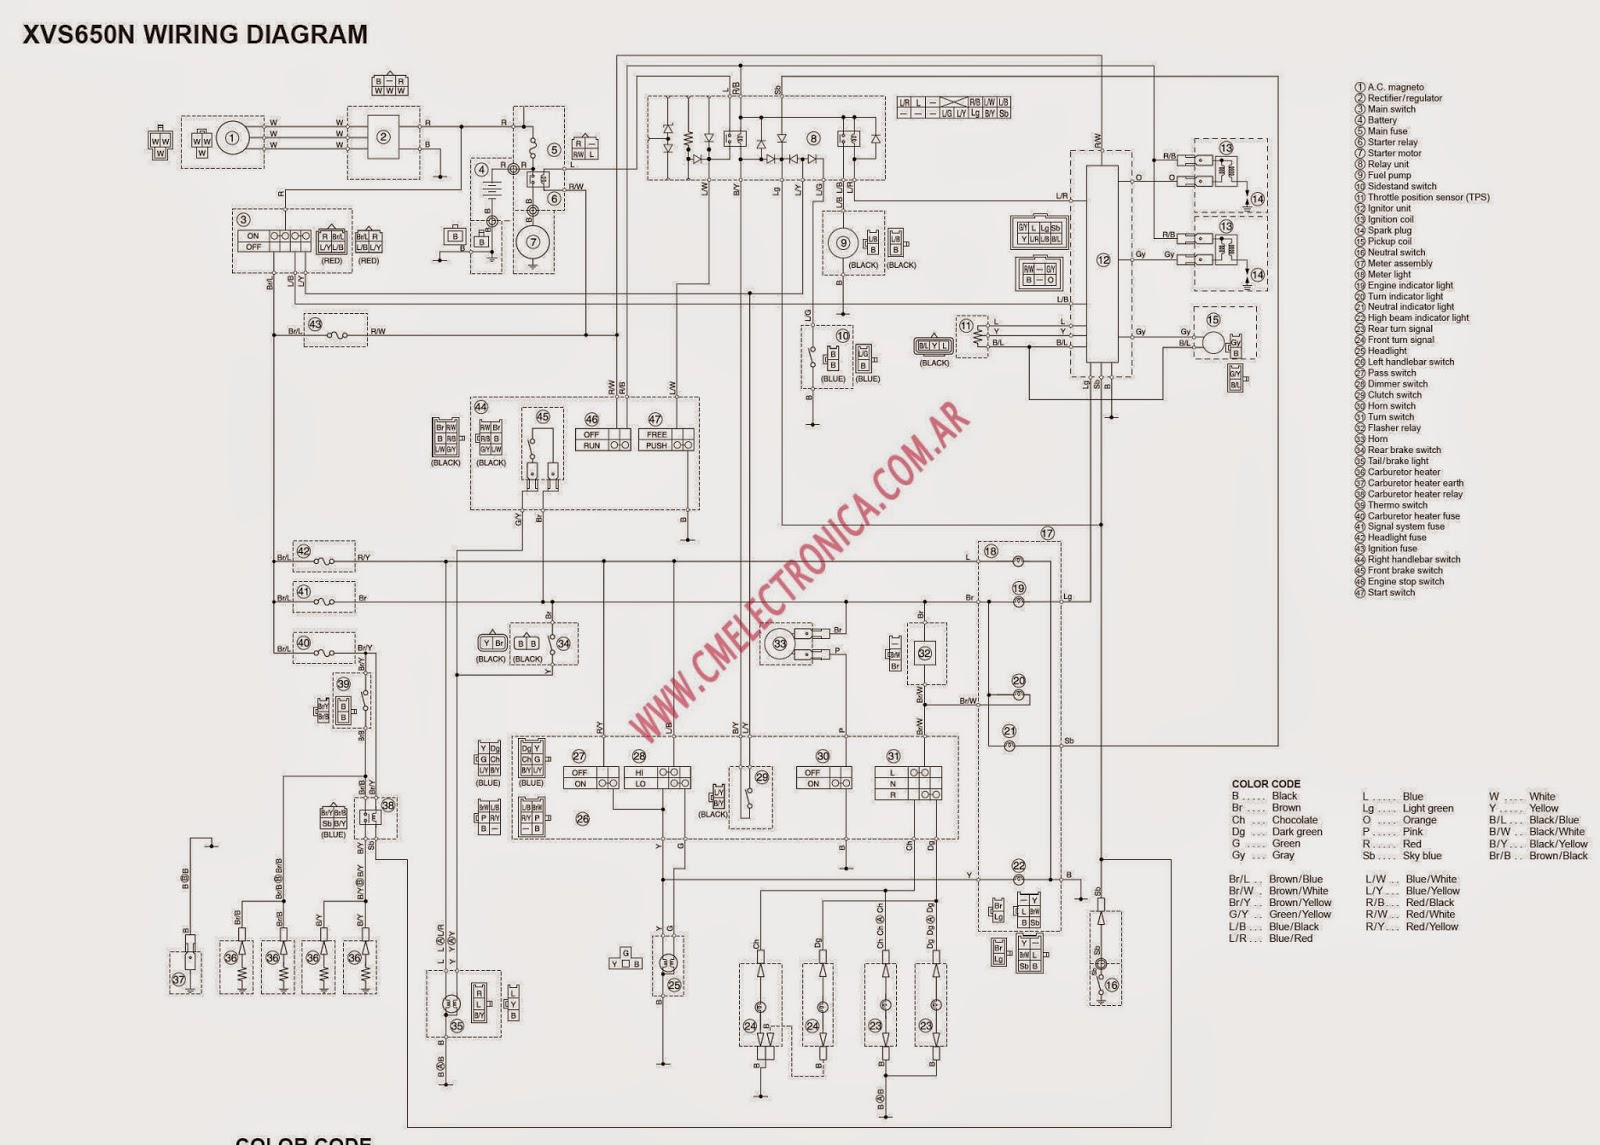 2007 Yamaha V Star 250 Wiring Diagram Wiring Diagrams Name Name Miglioribanche It